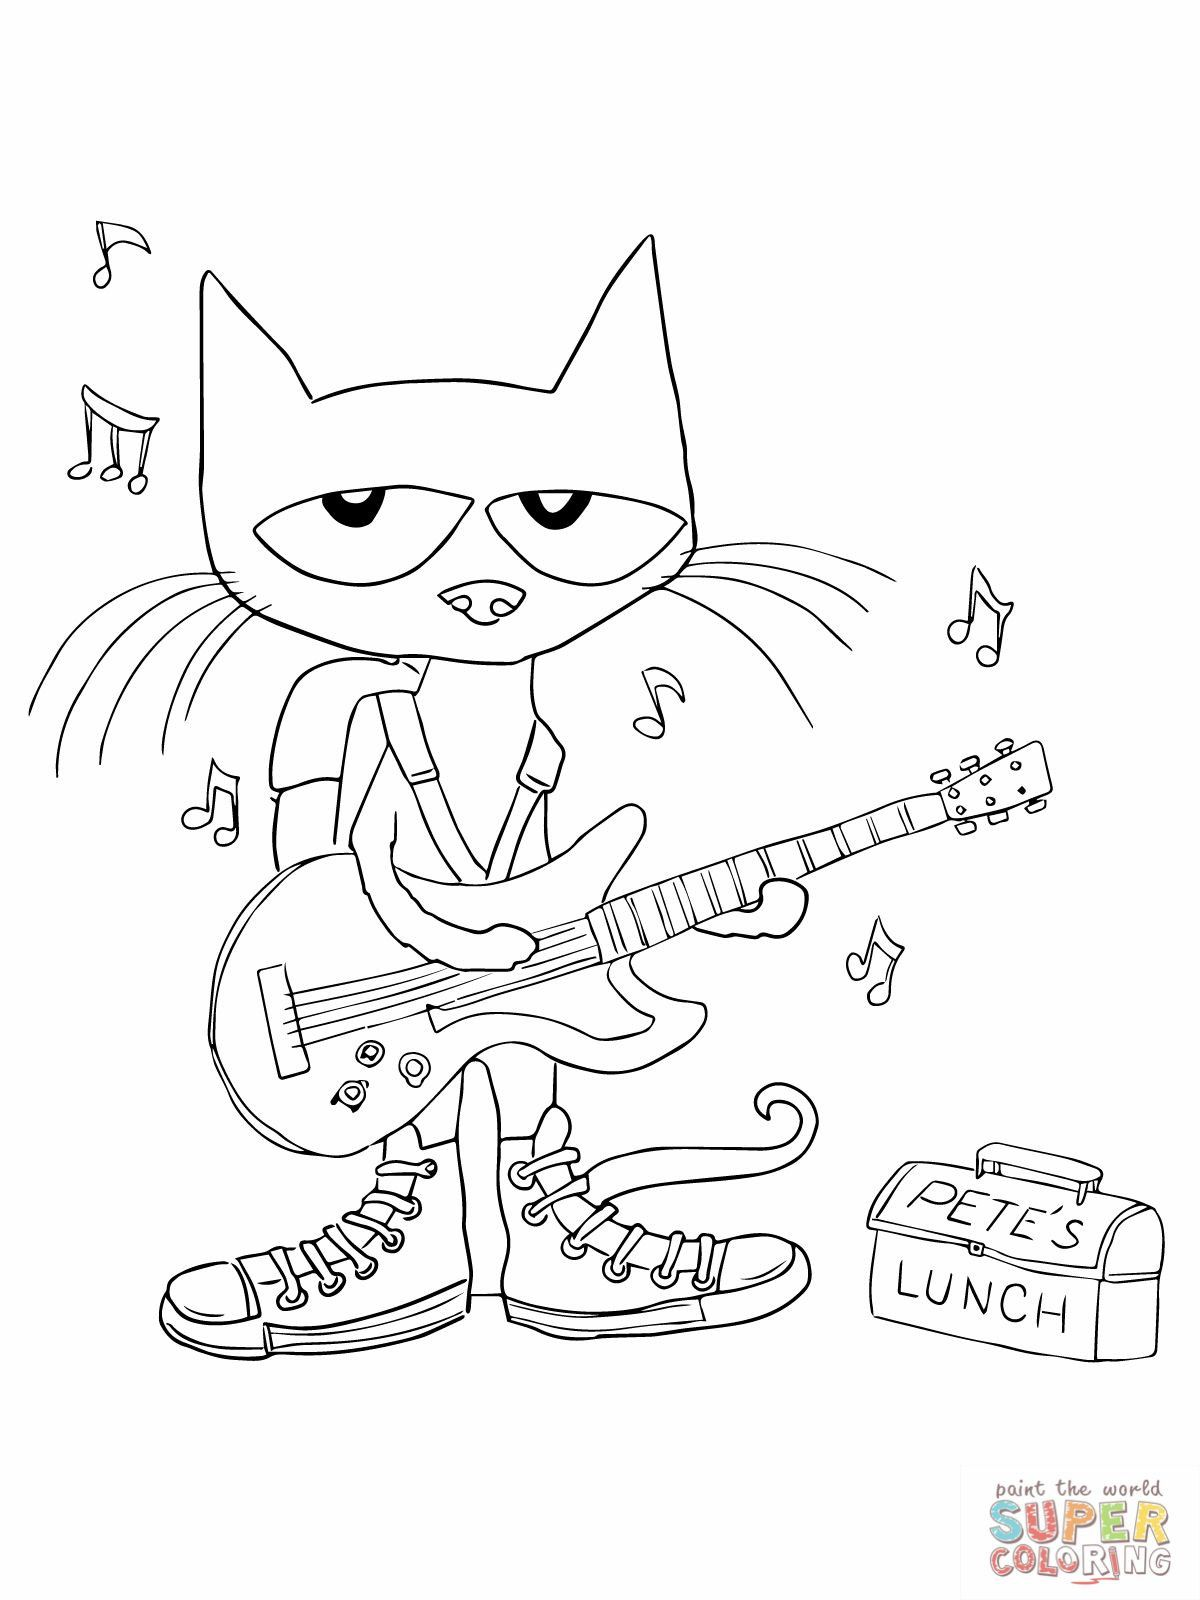 Pete The Cat Shoes Coloring Page Youngandtae Com In 2020 Pete The Cat Shoes Pete The Cat Music Coloring